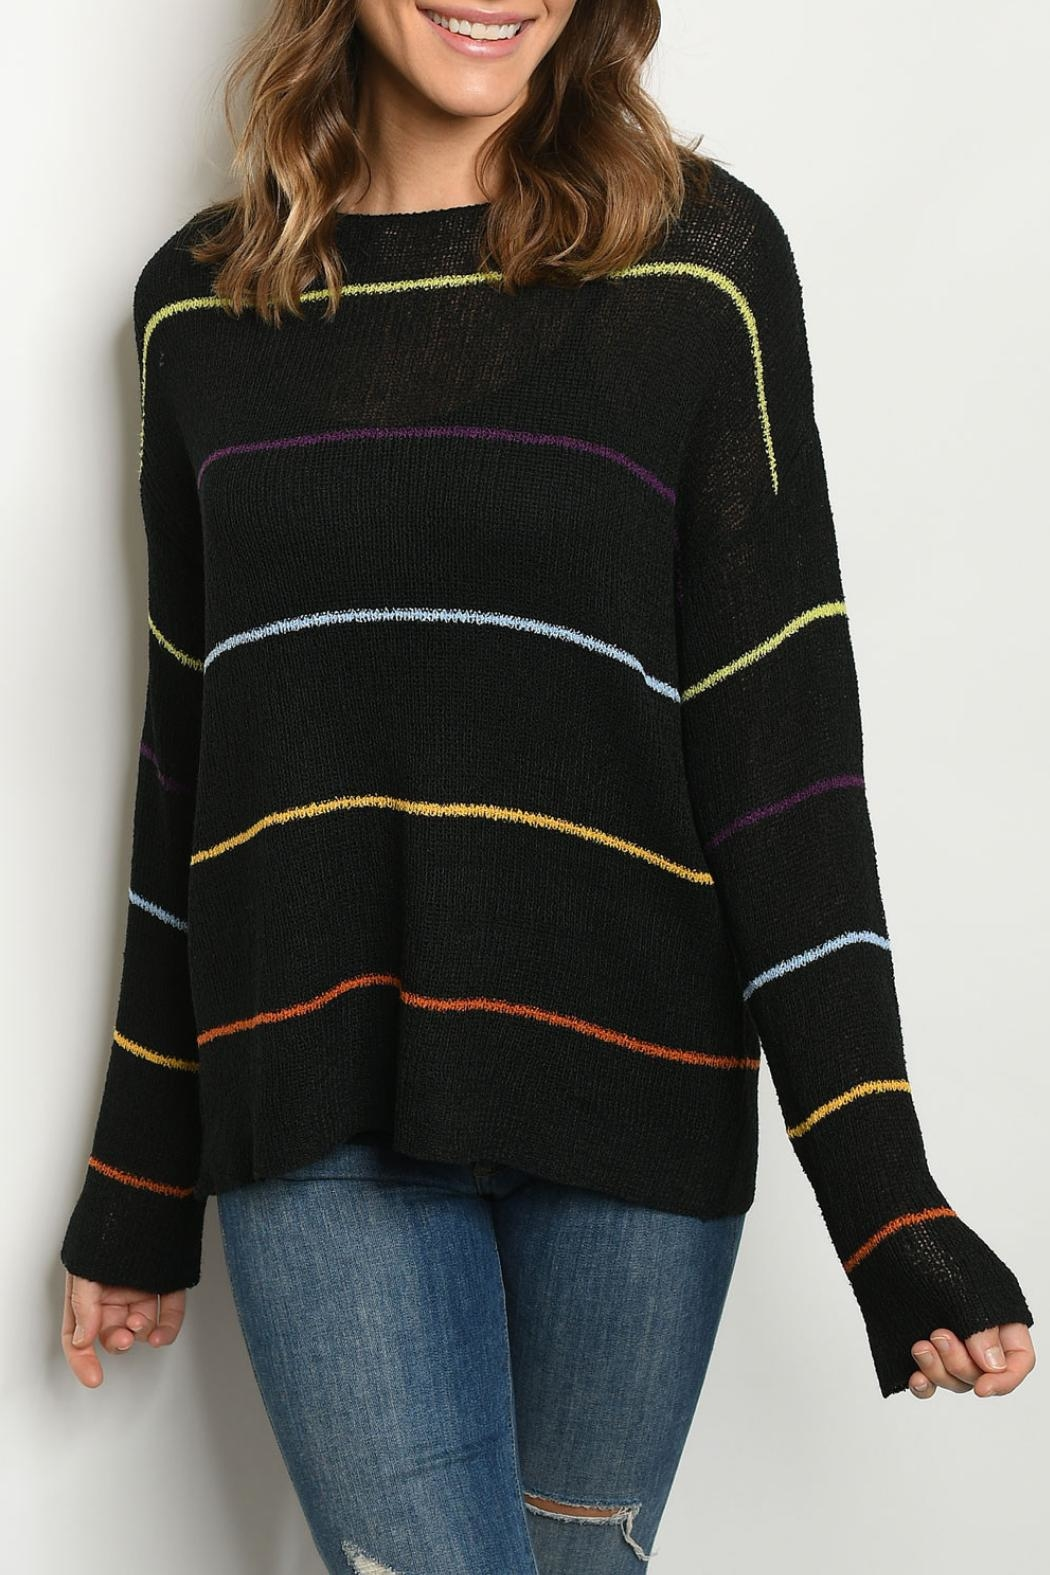 Le Lis Black Multi-Striped Sweater - Front Cropped Image